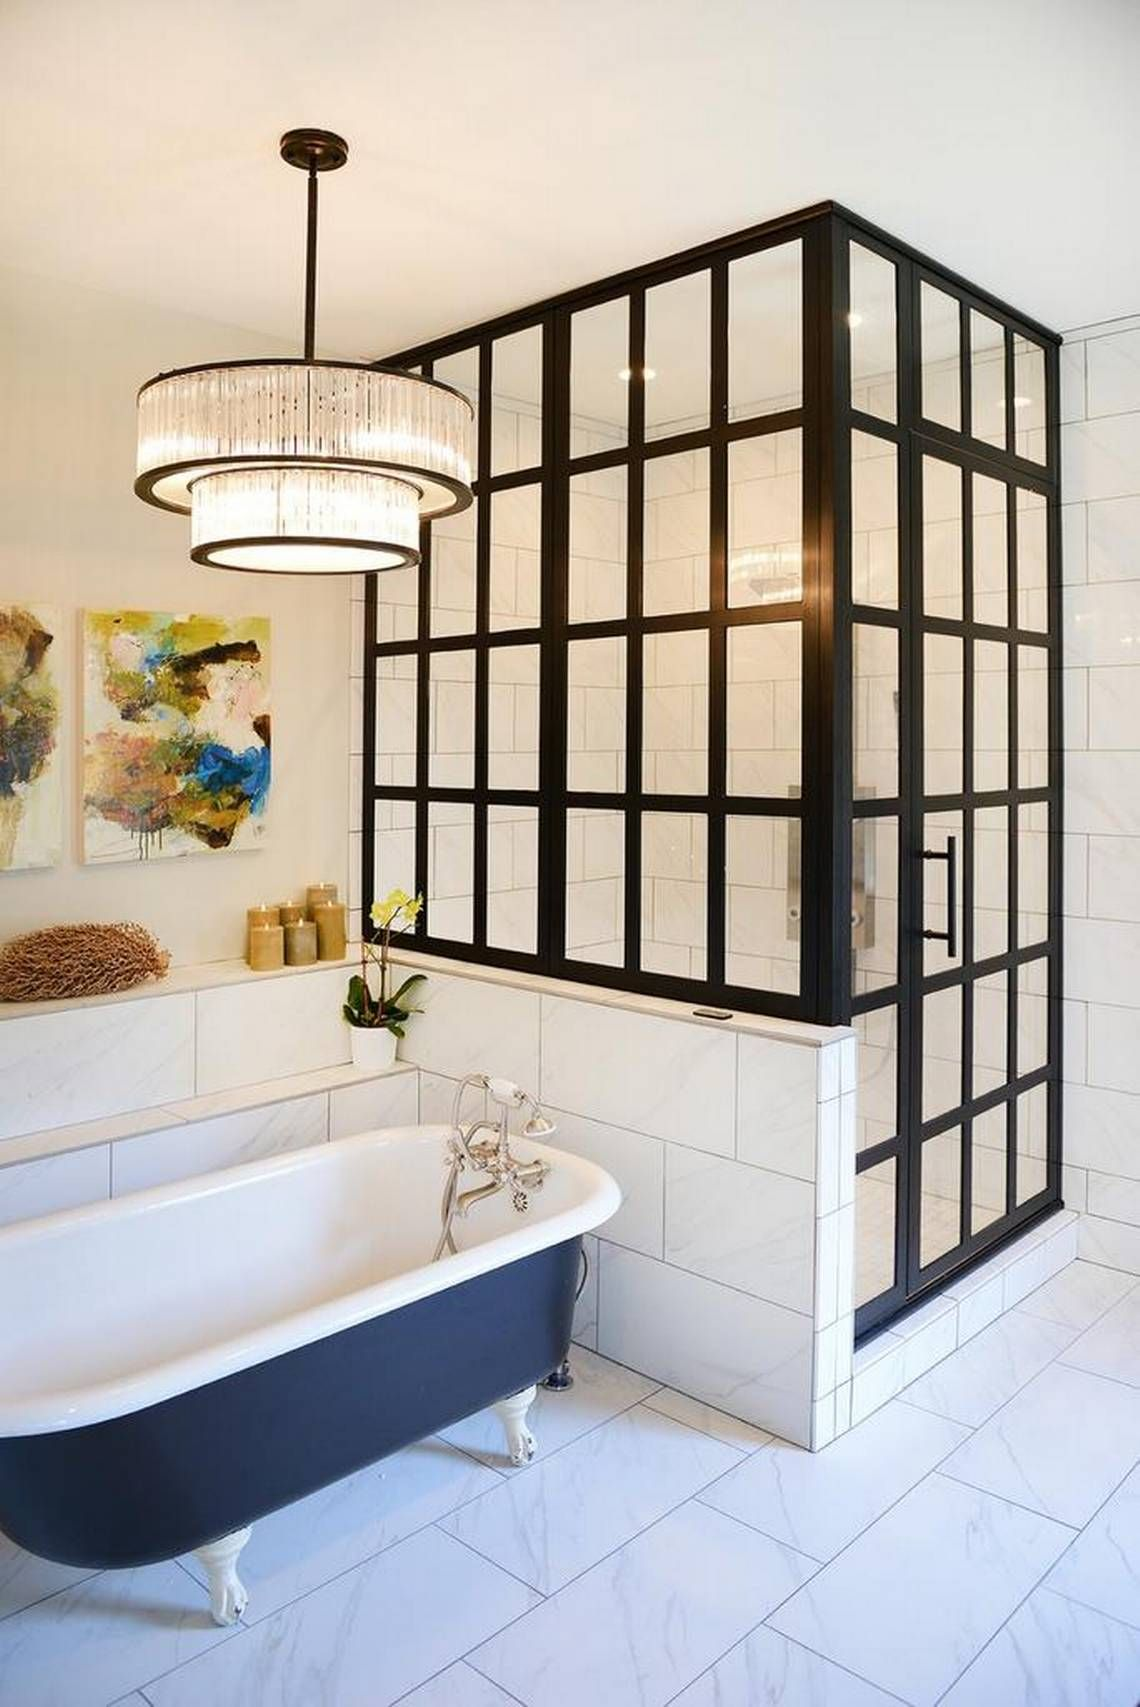 Image result for bargain mansions Tamara Day bathrooms ... on arabesque tile bathroom, lilac white bathroom, green and gold bathroom, bone white bathroom, all white bathroom, beige white bathroom, yellow white bathroom, navy white bathroom, gold glass tile bathroom, black gold living room, brown white bathroom, grey white bathroom, green white bathroom, tan bathroom, white and gold bathroom, dark wood floor bathroom, pink white bathroom, natural white bathroom, red white bathroom, green and beige bathroom,